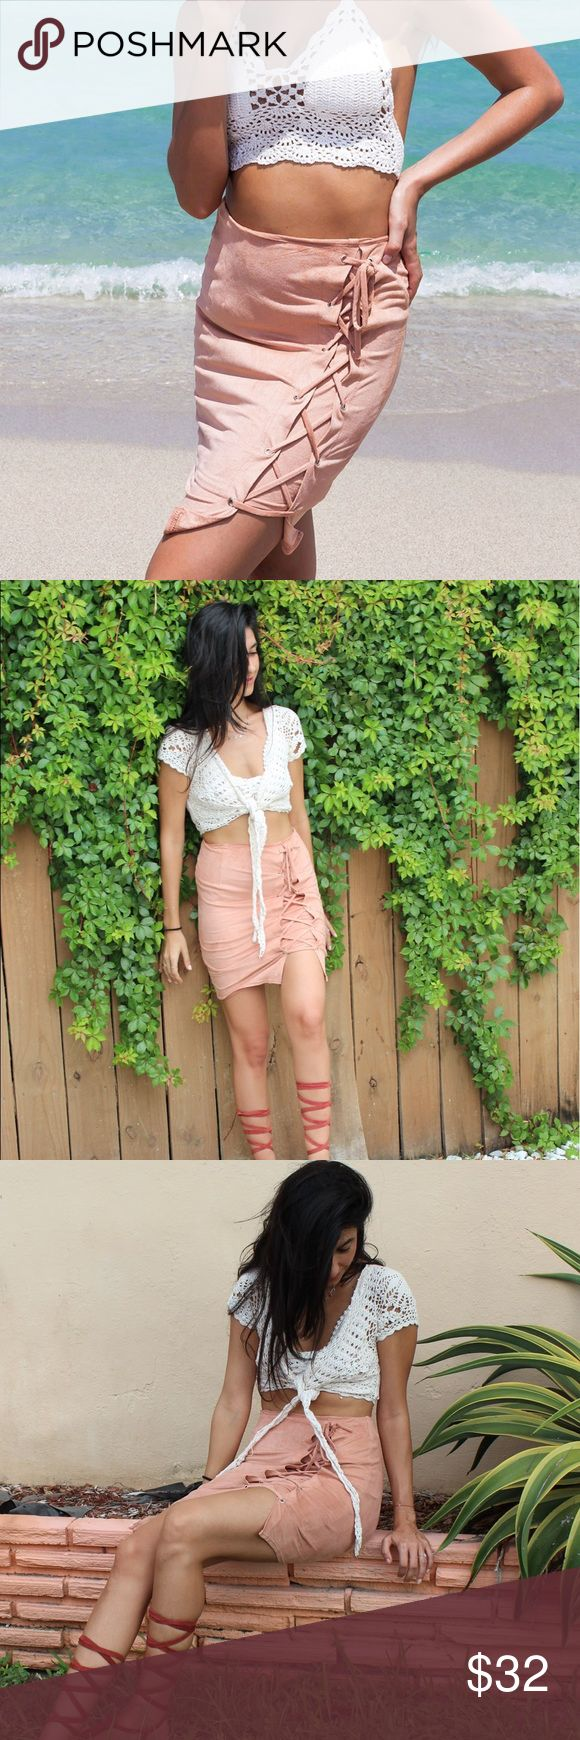 Pastel suede skirt The high waisted Passion skirt is a festival fave! The material is a soft faux suede fabric featuring shoelace tie on the side that can be adjusted to your best confort. Hipisburry Skirts Midi